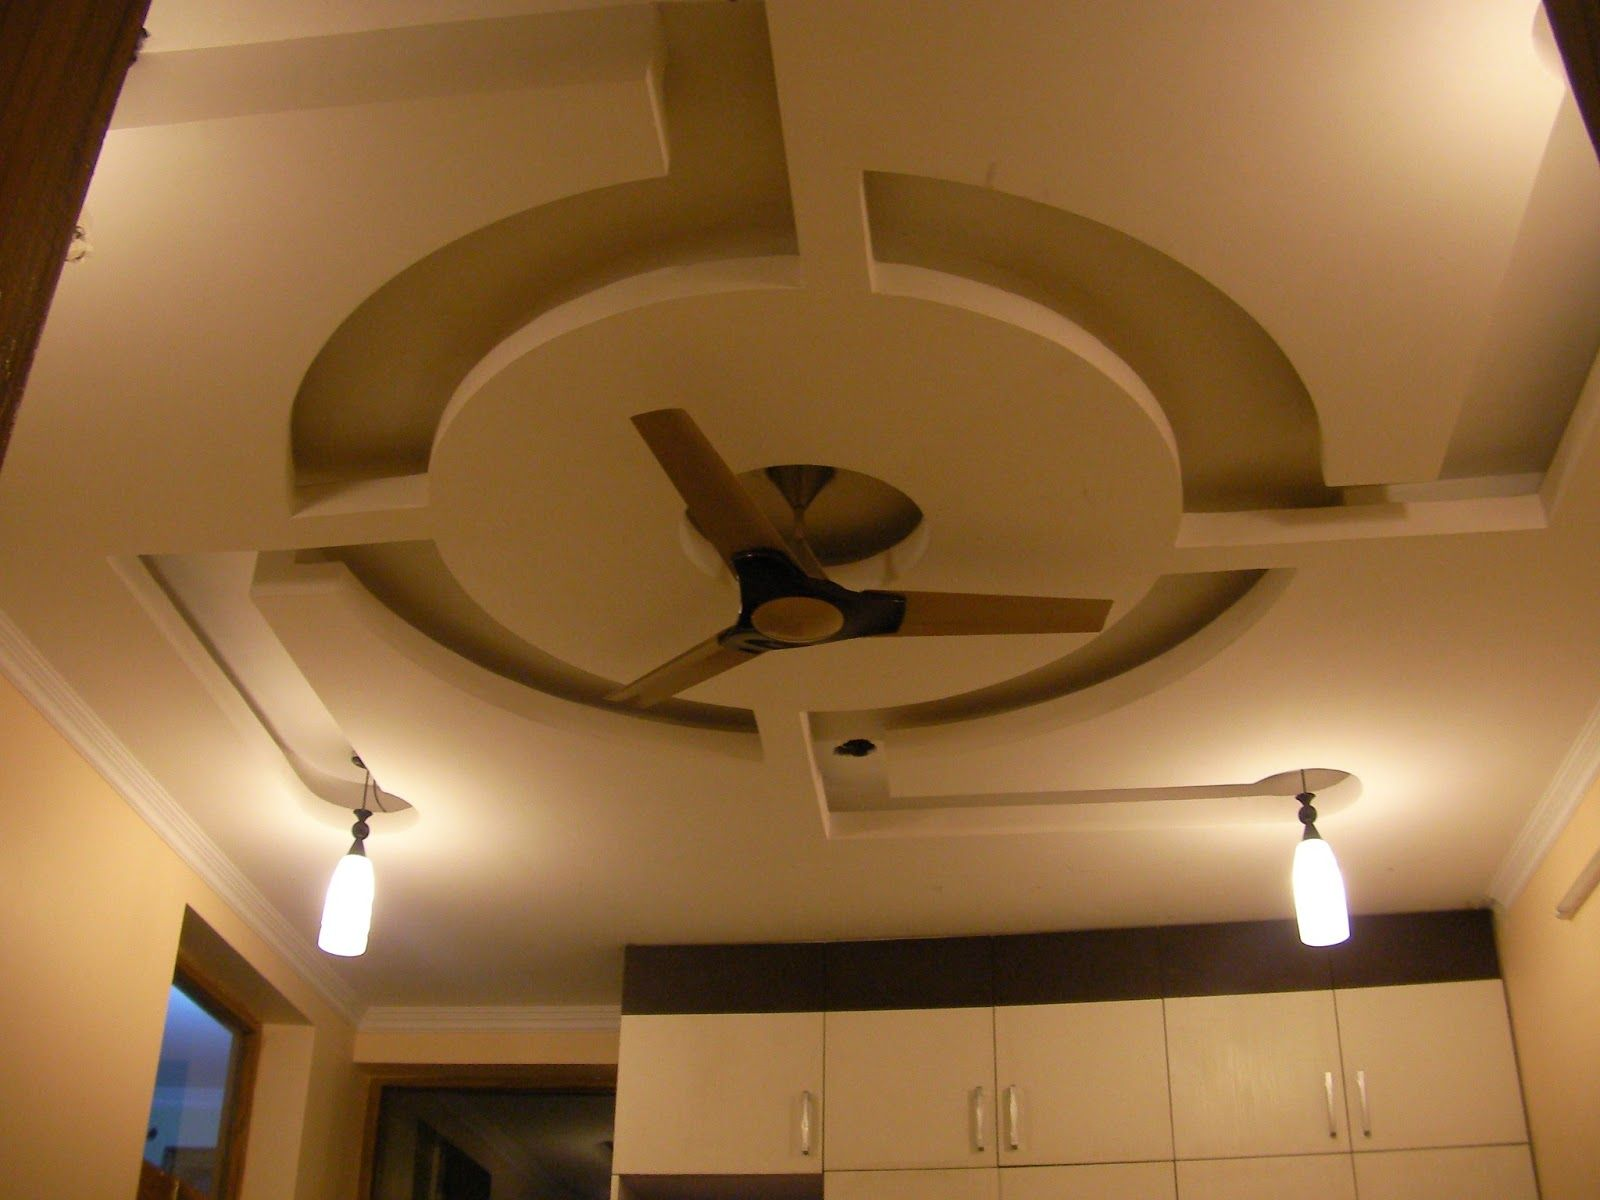 False Ceiling Designs For Living Room With Two Fans House Decor - Living room false ceiling designs pictures